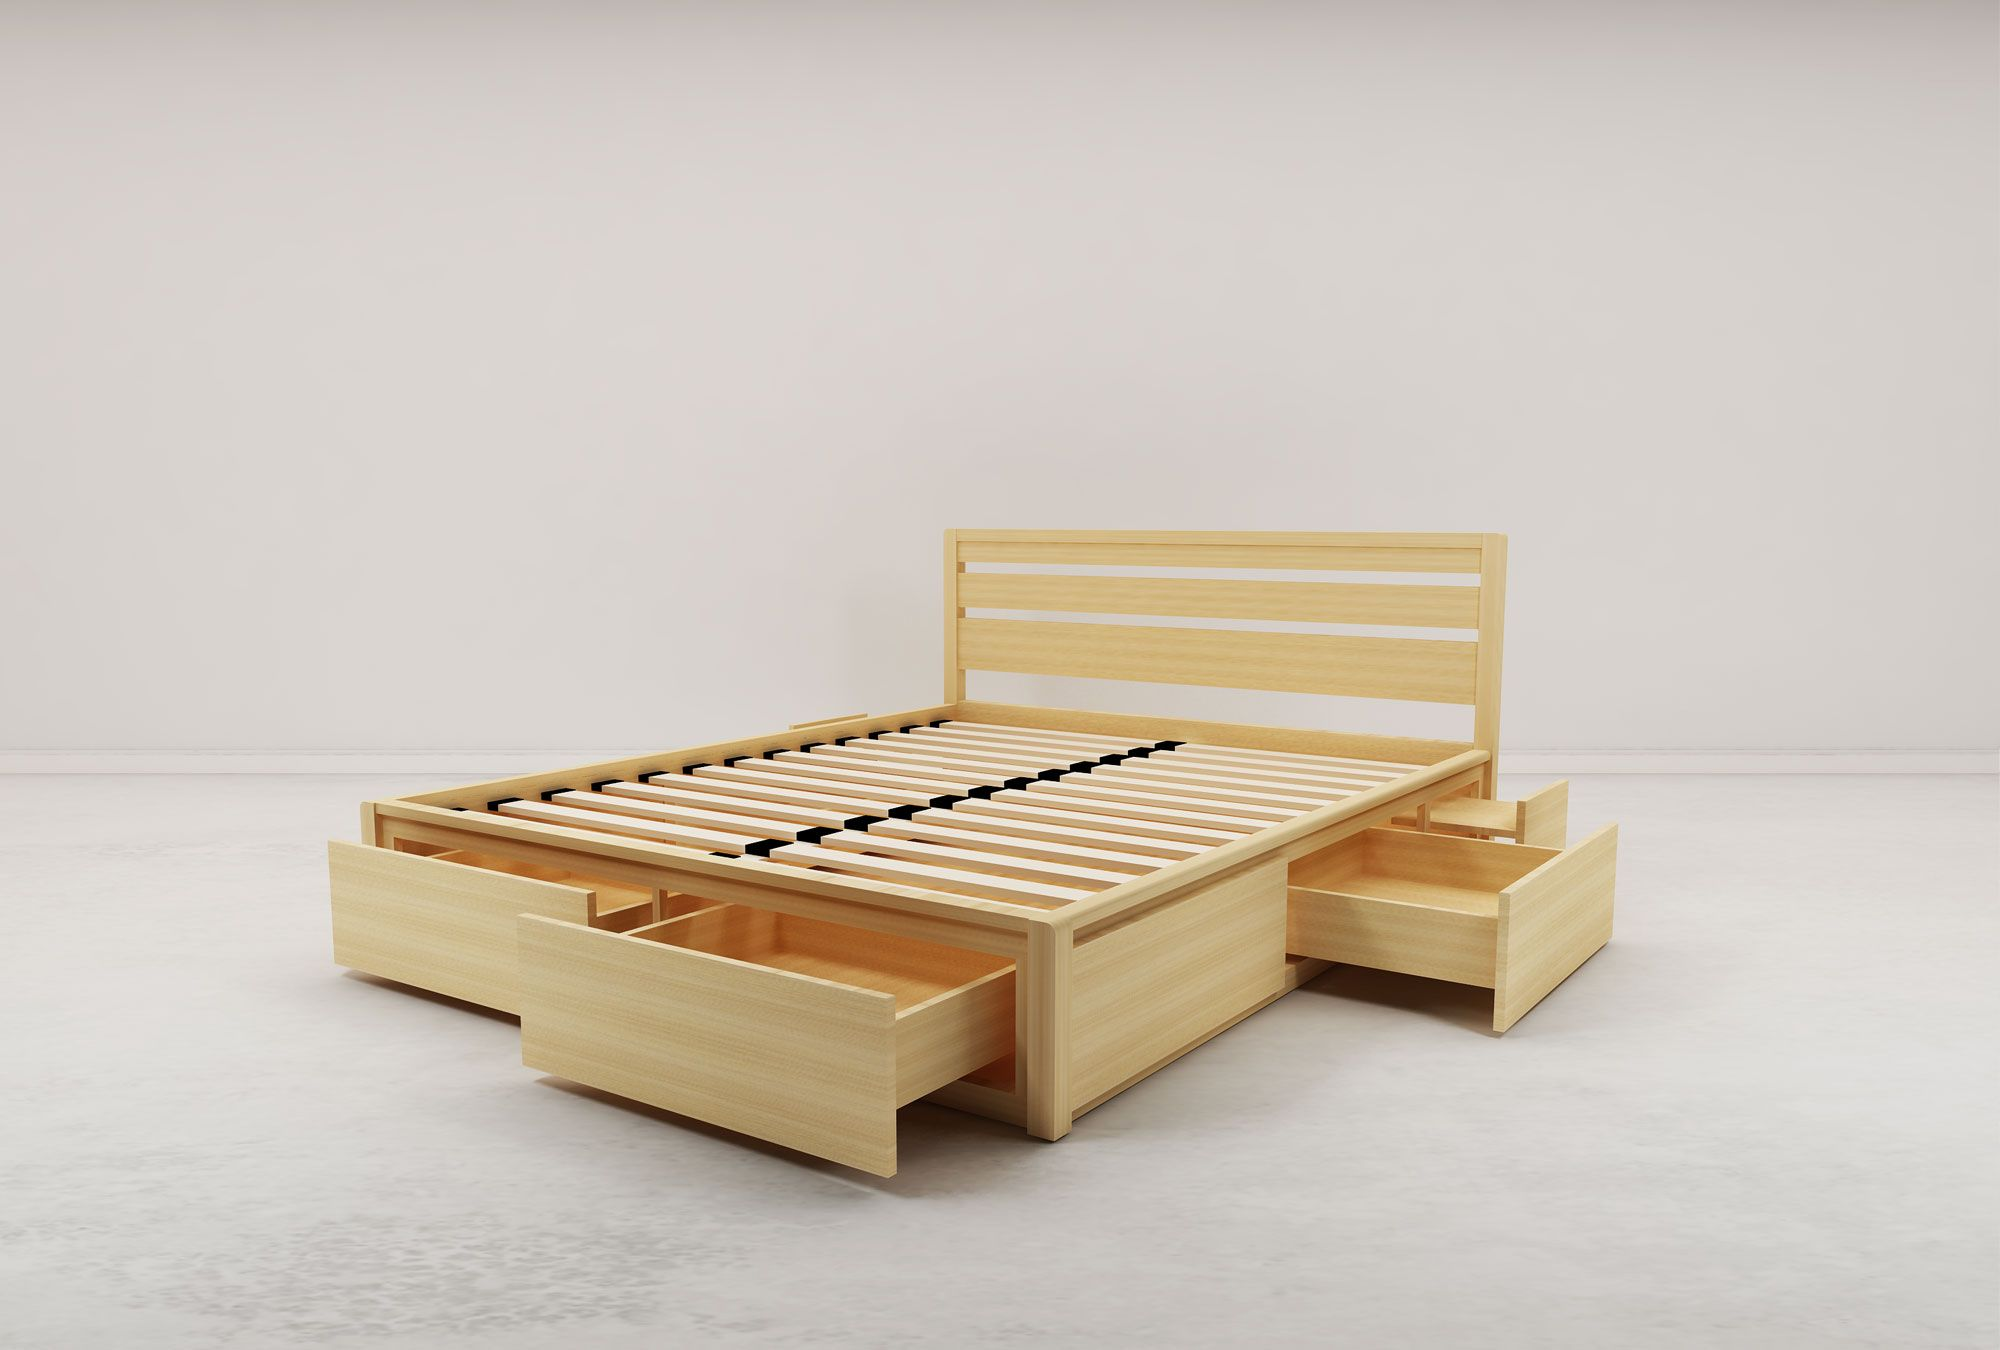 Pin by Adam Johnson on apartment ideas Bed frame with